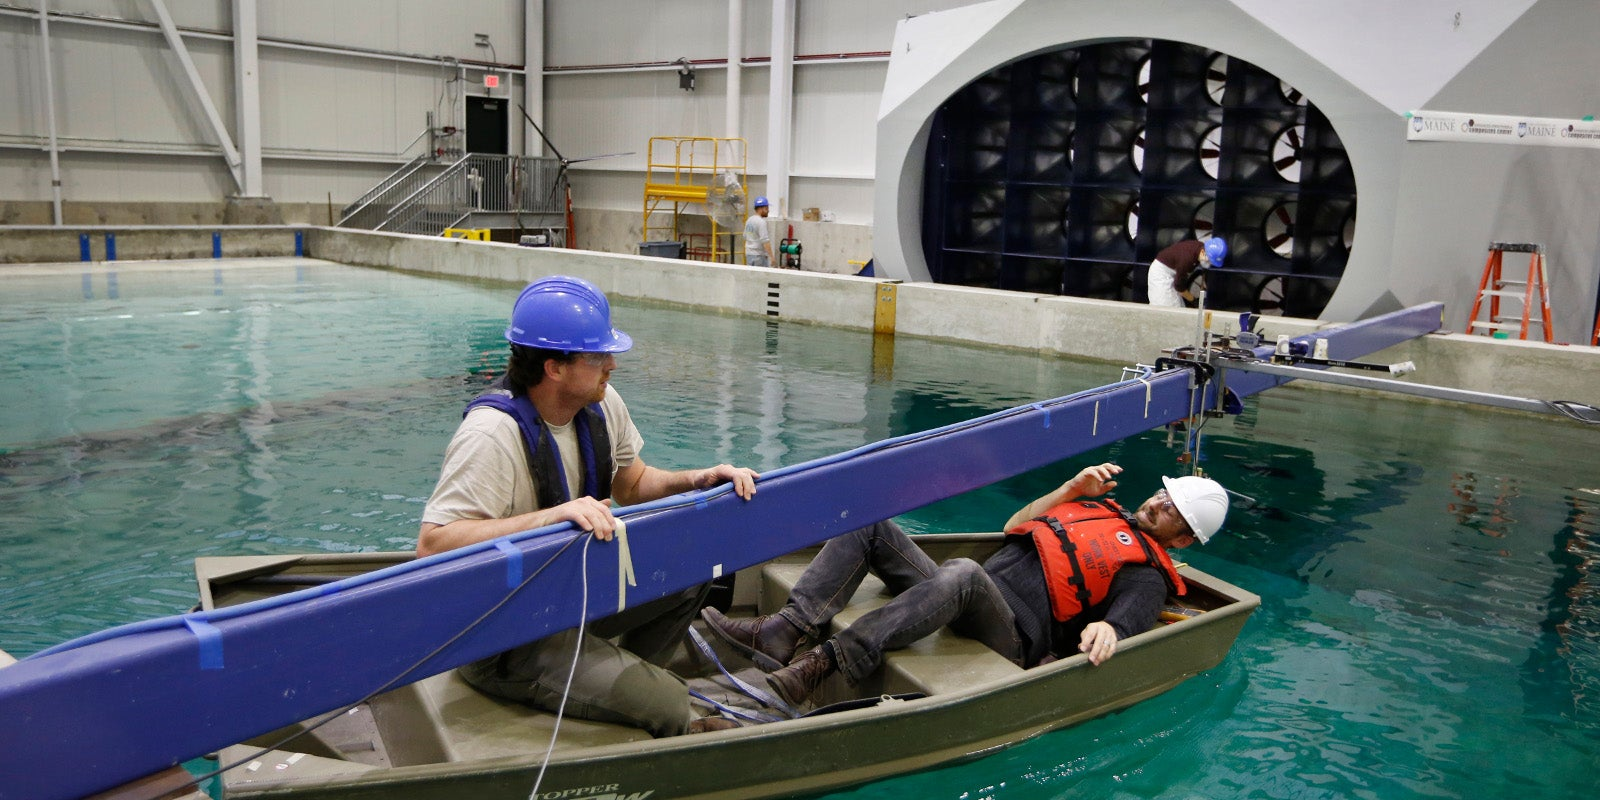 This New Ocean Simulator Will Test Marine Engineering to Destruction